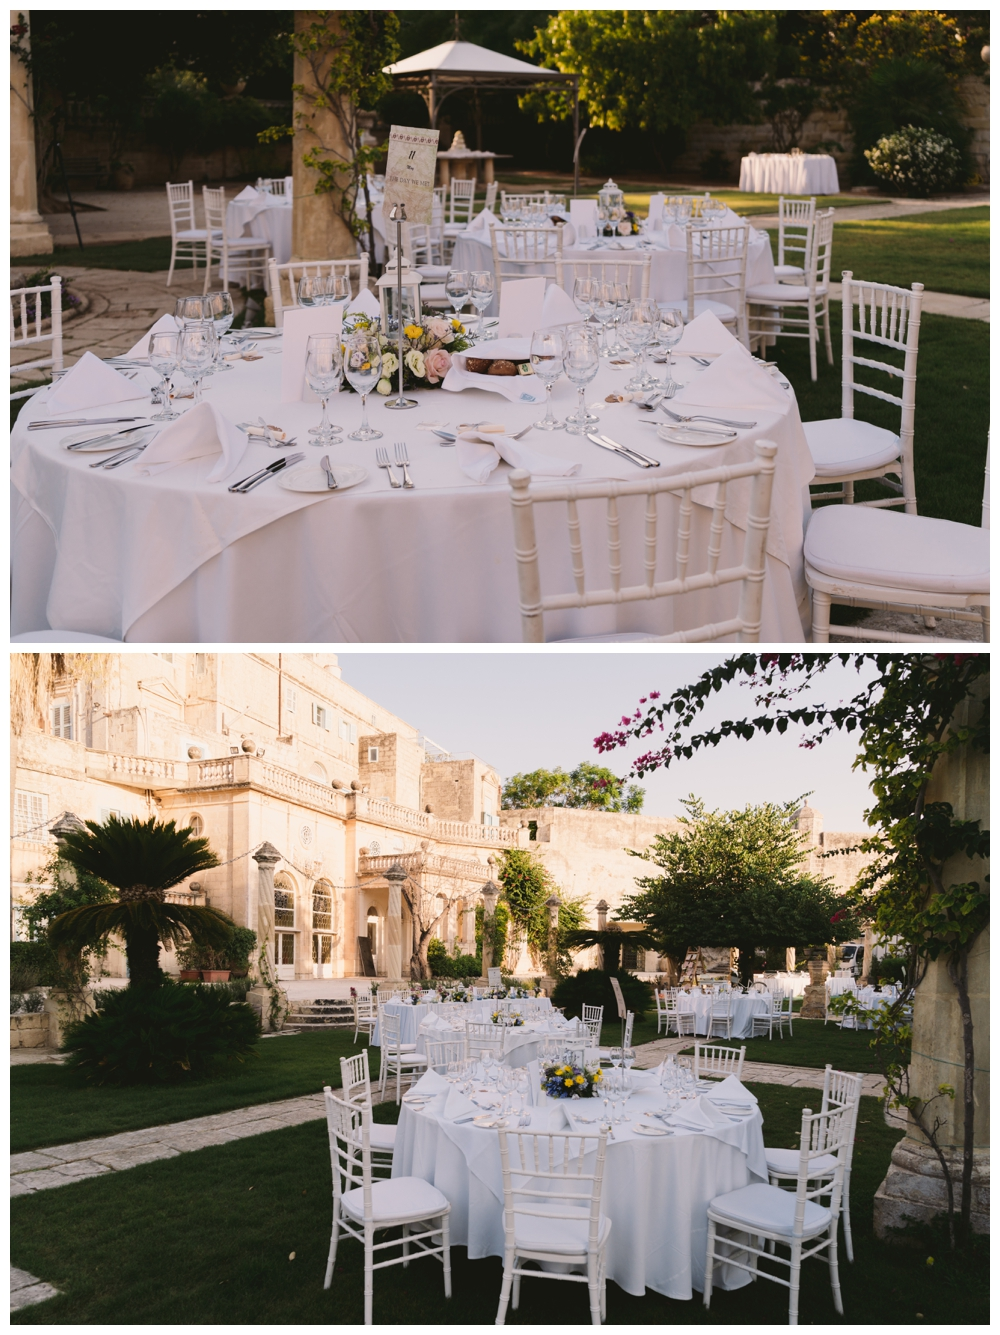 wedding_photographer_matla_villa_balogna_0122.jpg